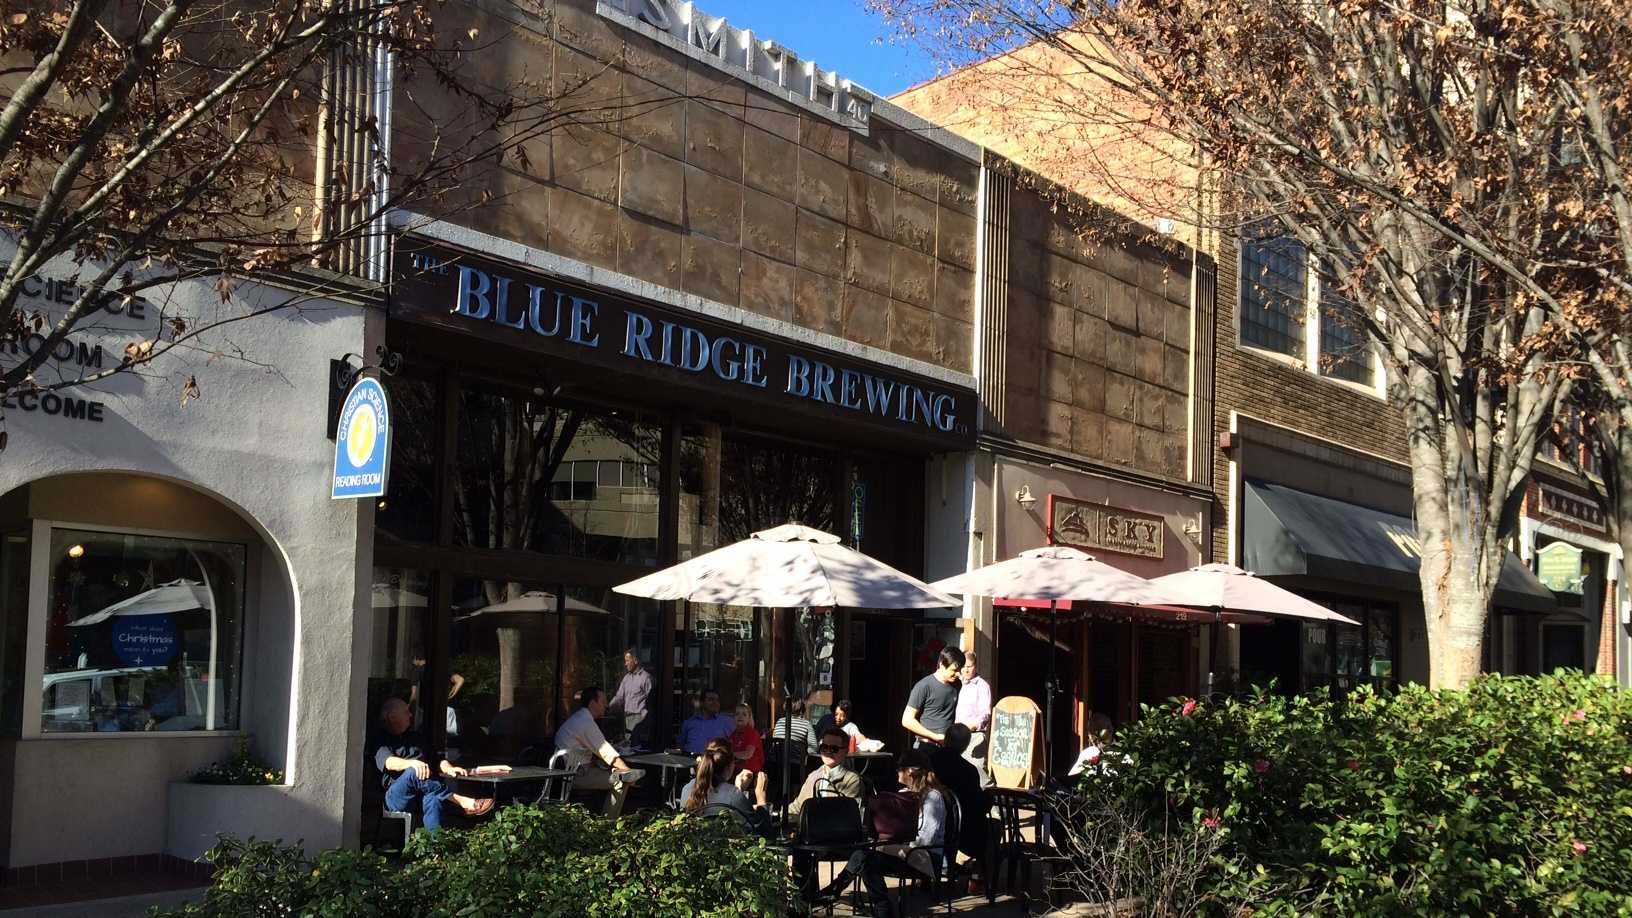 Blue Ridge Brewing Co. on N. Main St. in Greenville